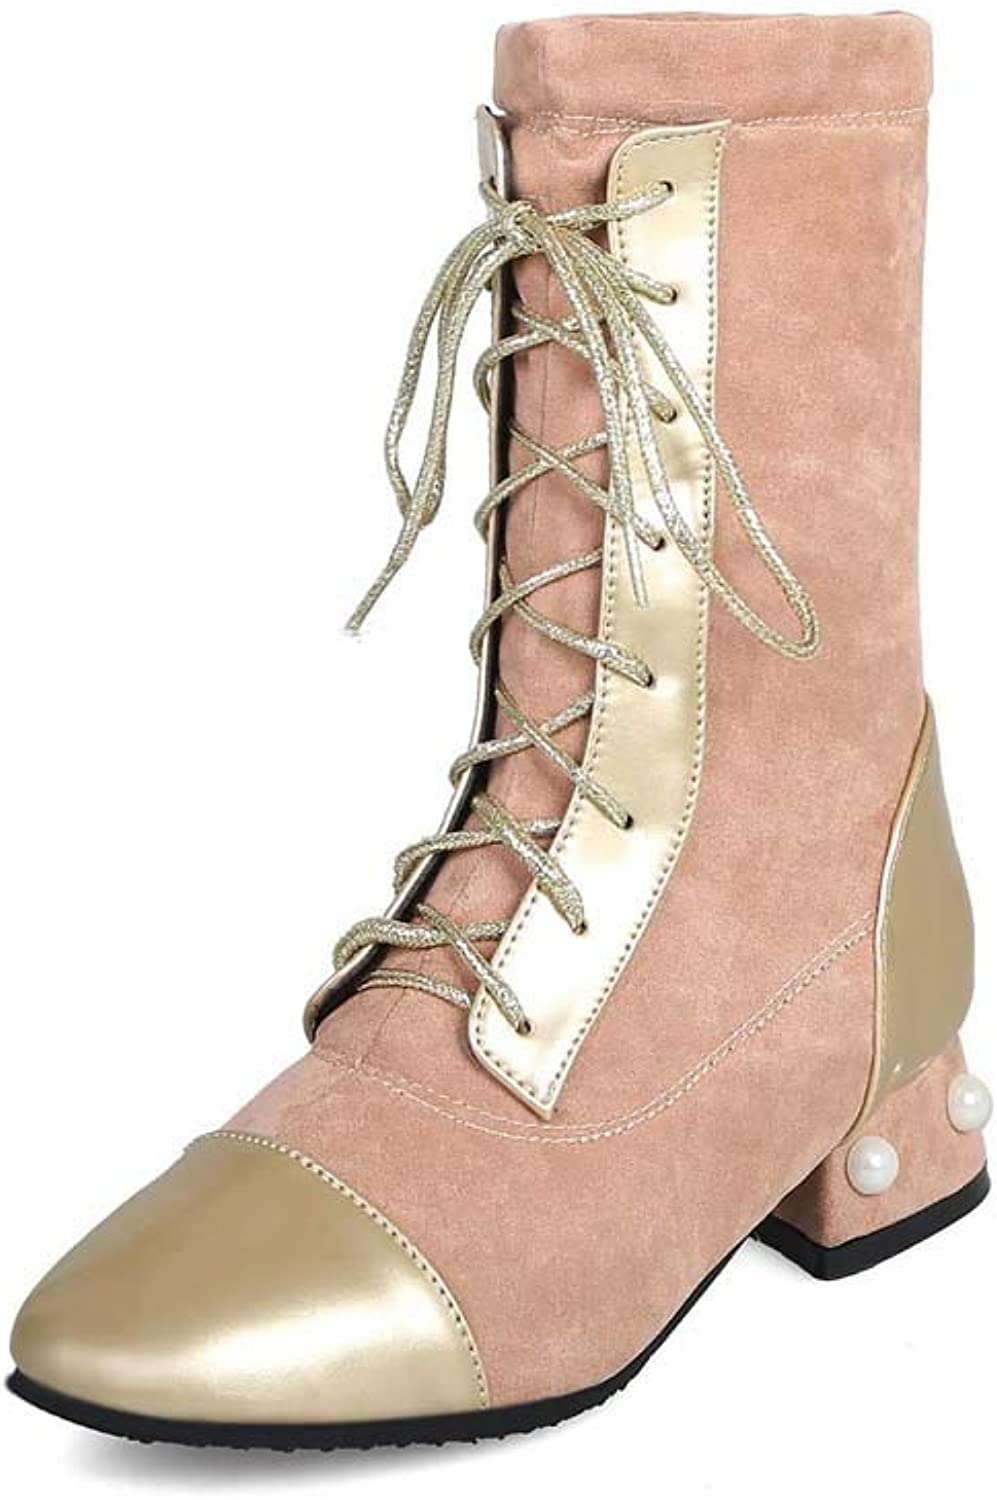 Women's Boots, Square with Heel 34-43 Large Size Lace-up Boots Black, gold, Silver